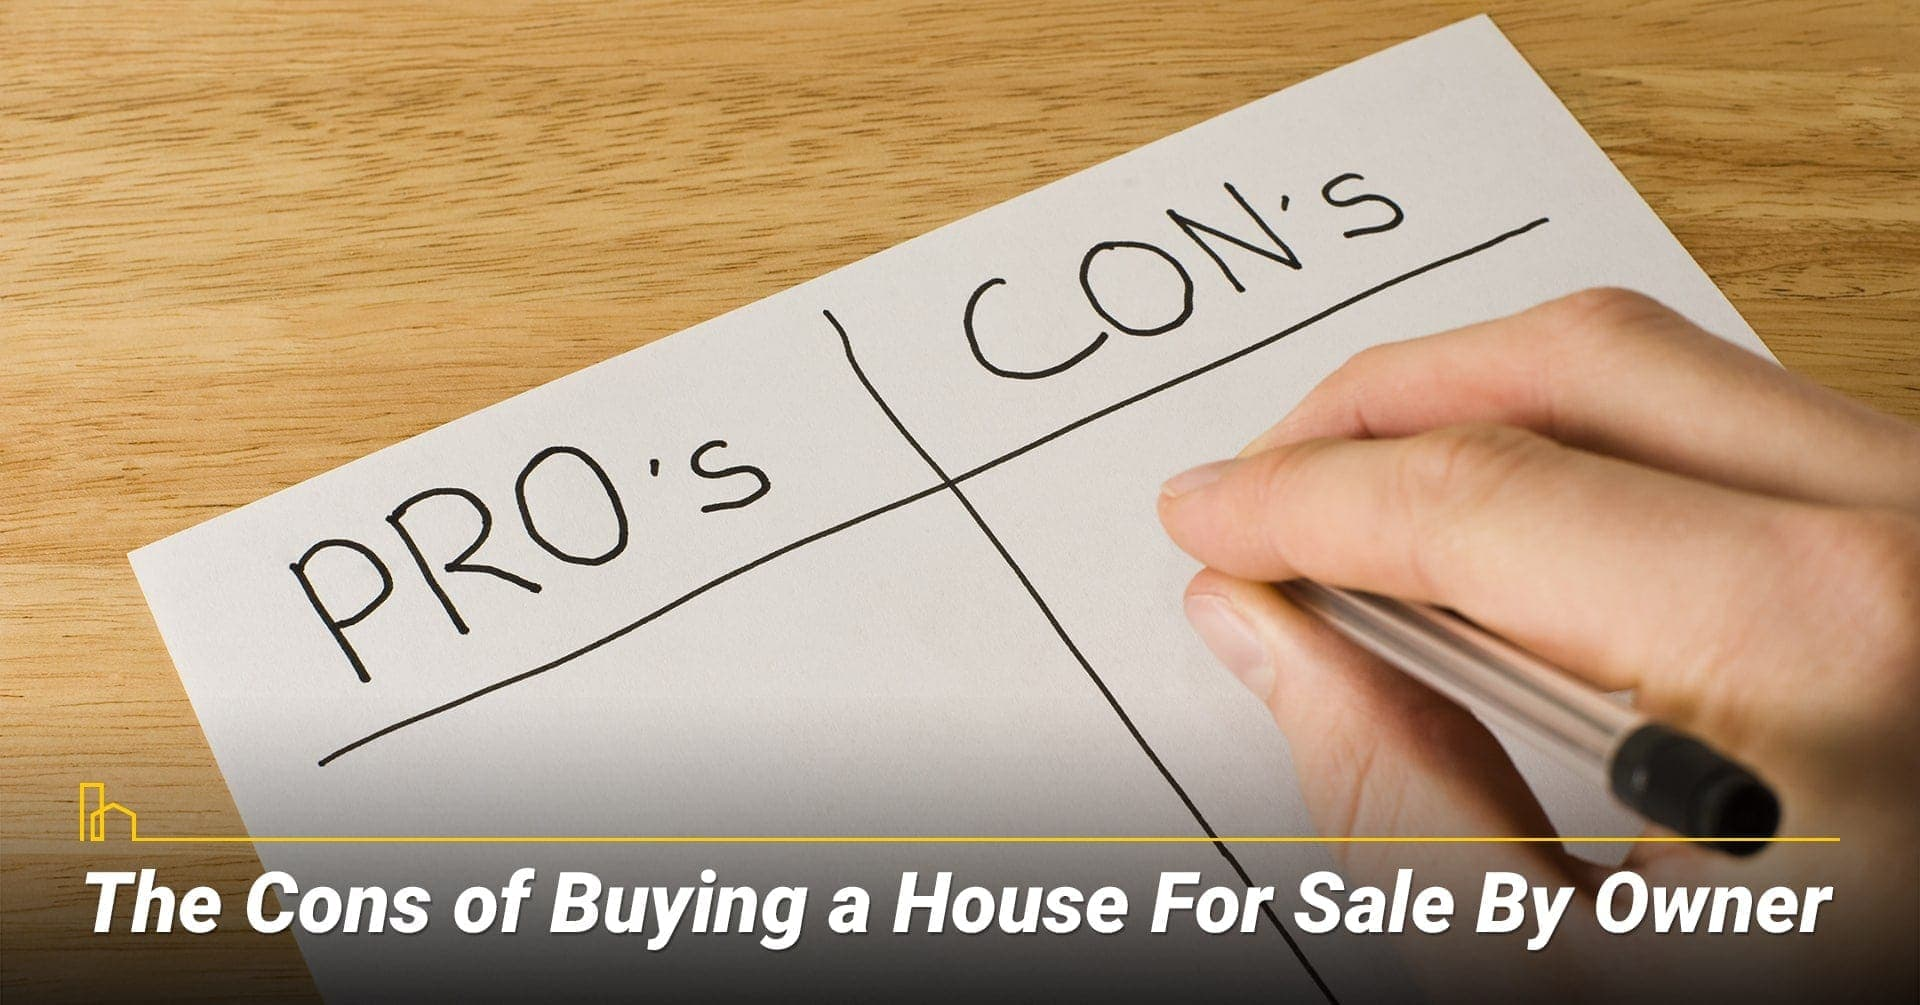 The Cons of Buying a House For Sale By Owner, the disadvantages of buying sale buy owner home